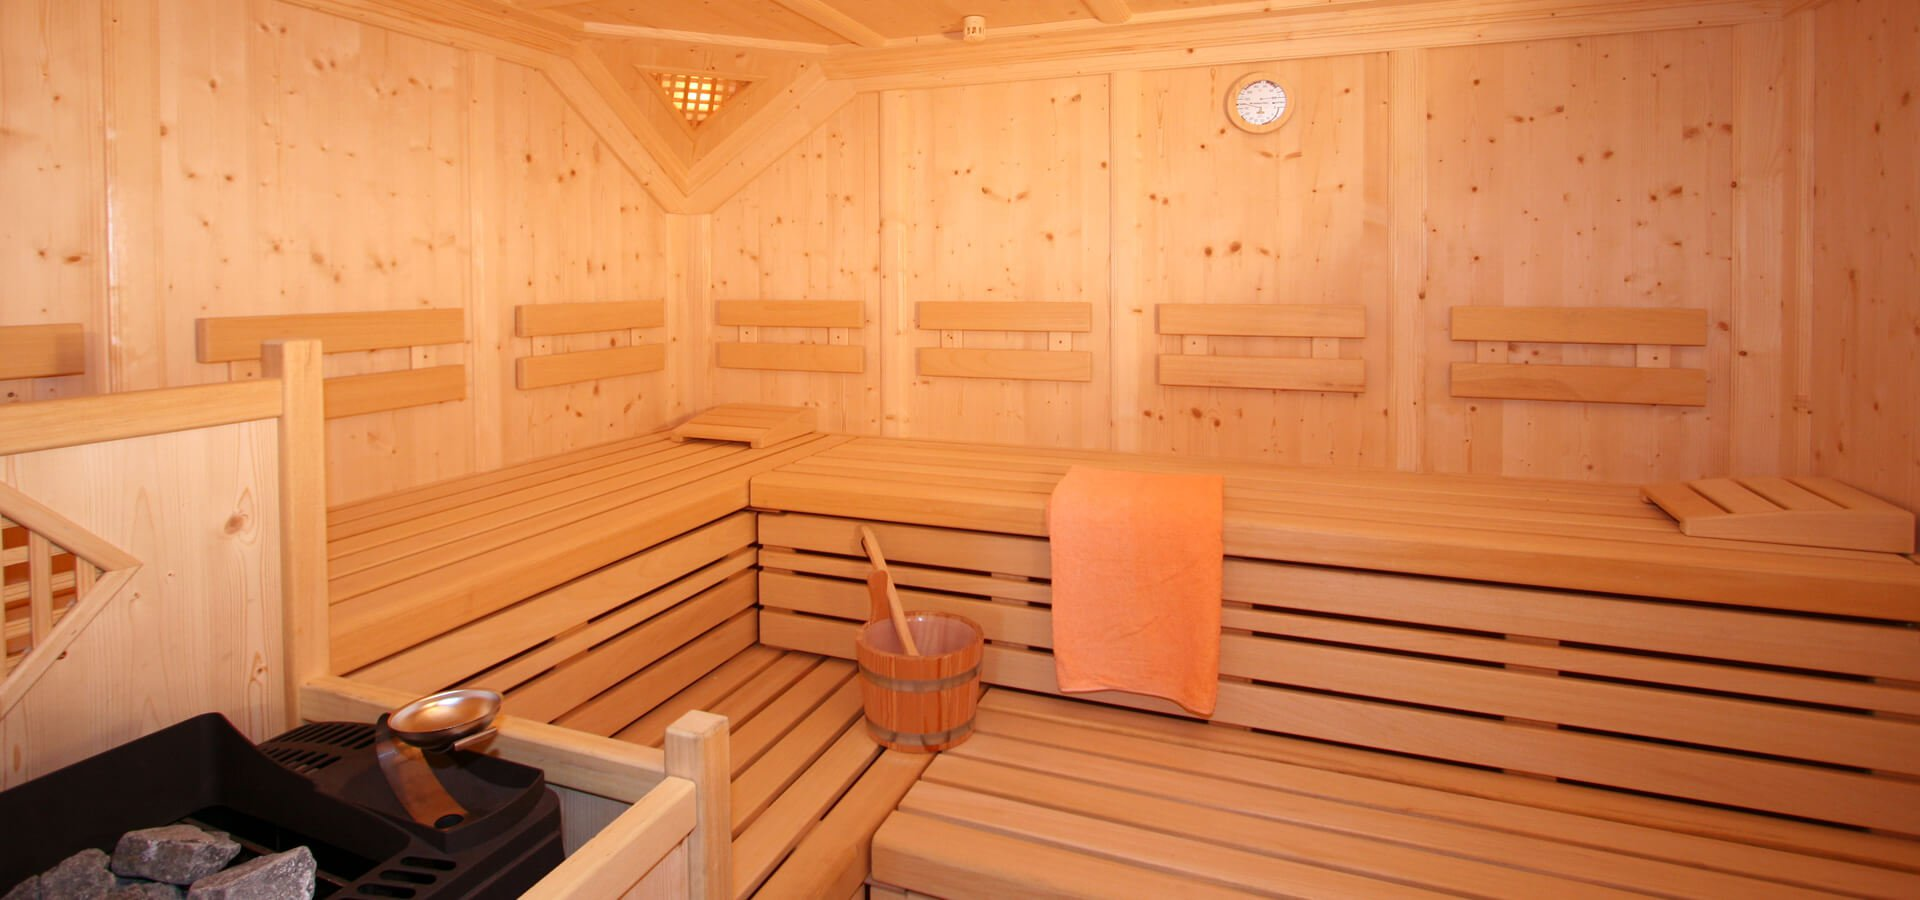 apartment with sauna your wellness holiday on the seiser alm. Black Bedroom Furniture Sets. Home Design Ideas